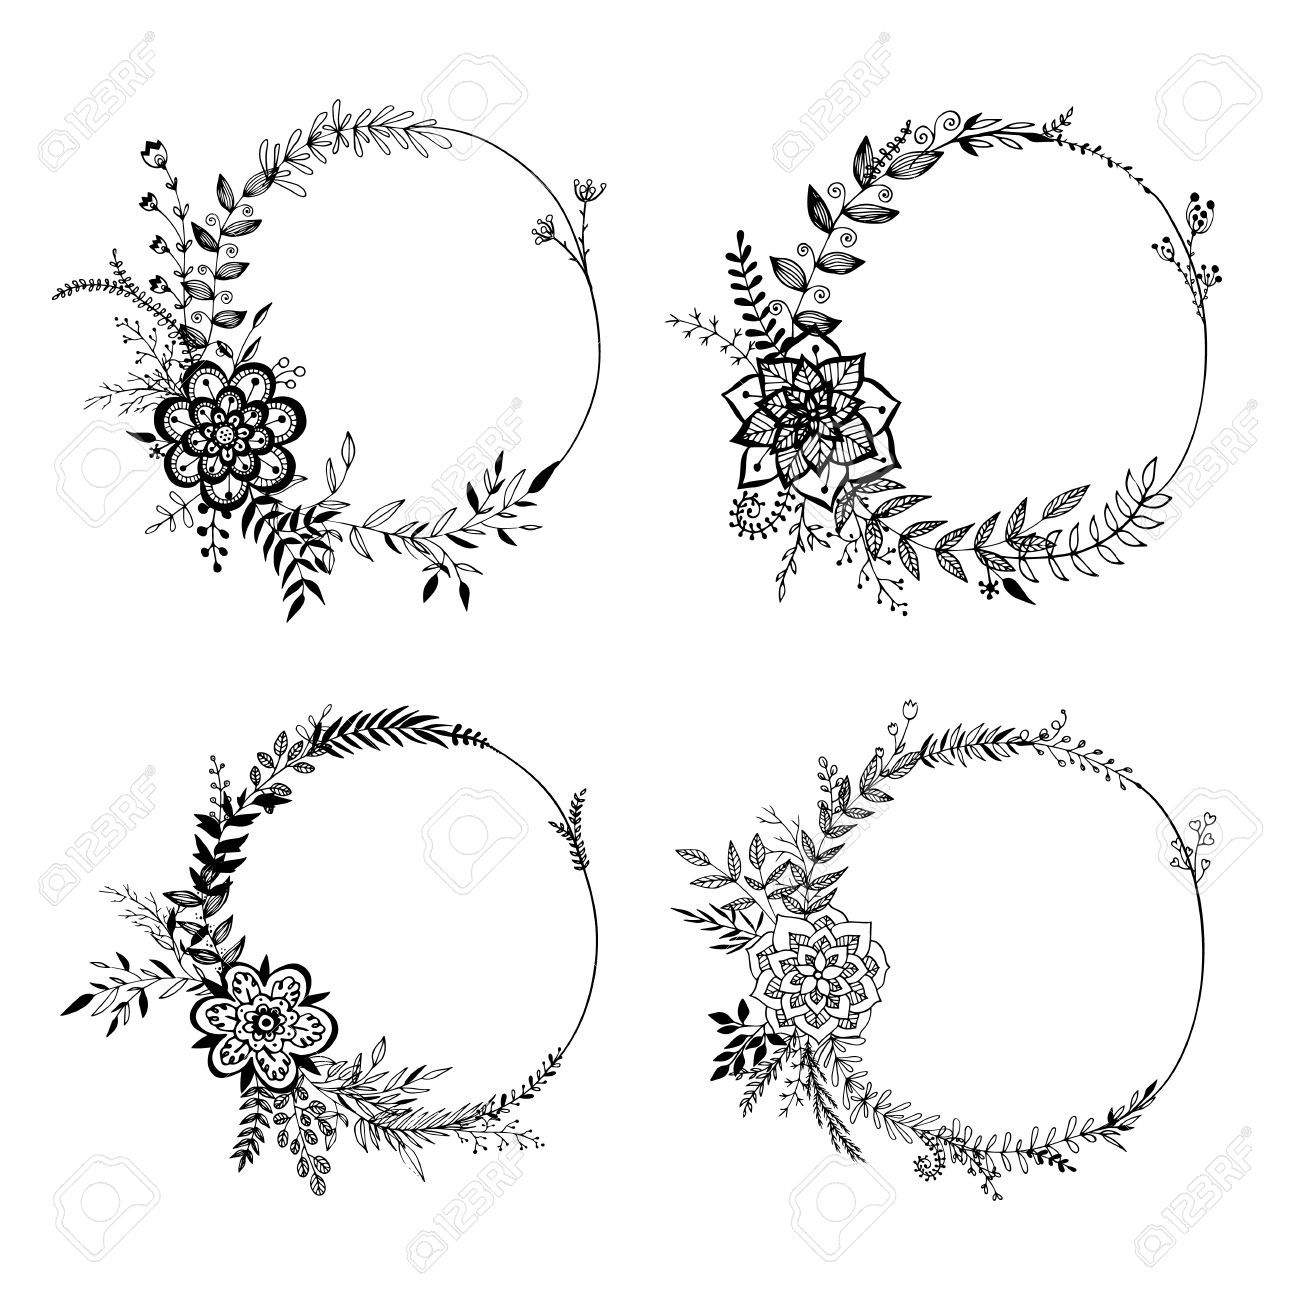 Wreath majhare rakhbo #01. Practise these. Will go well